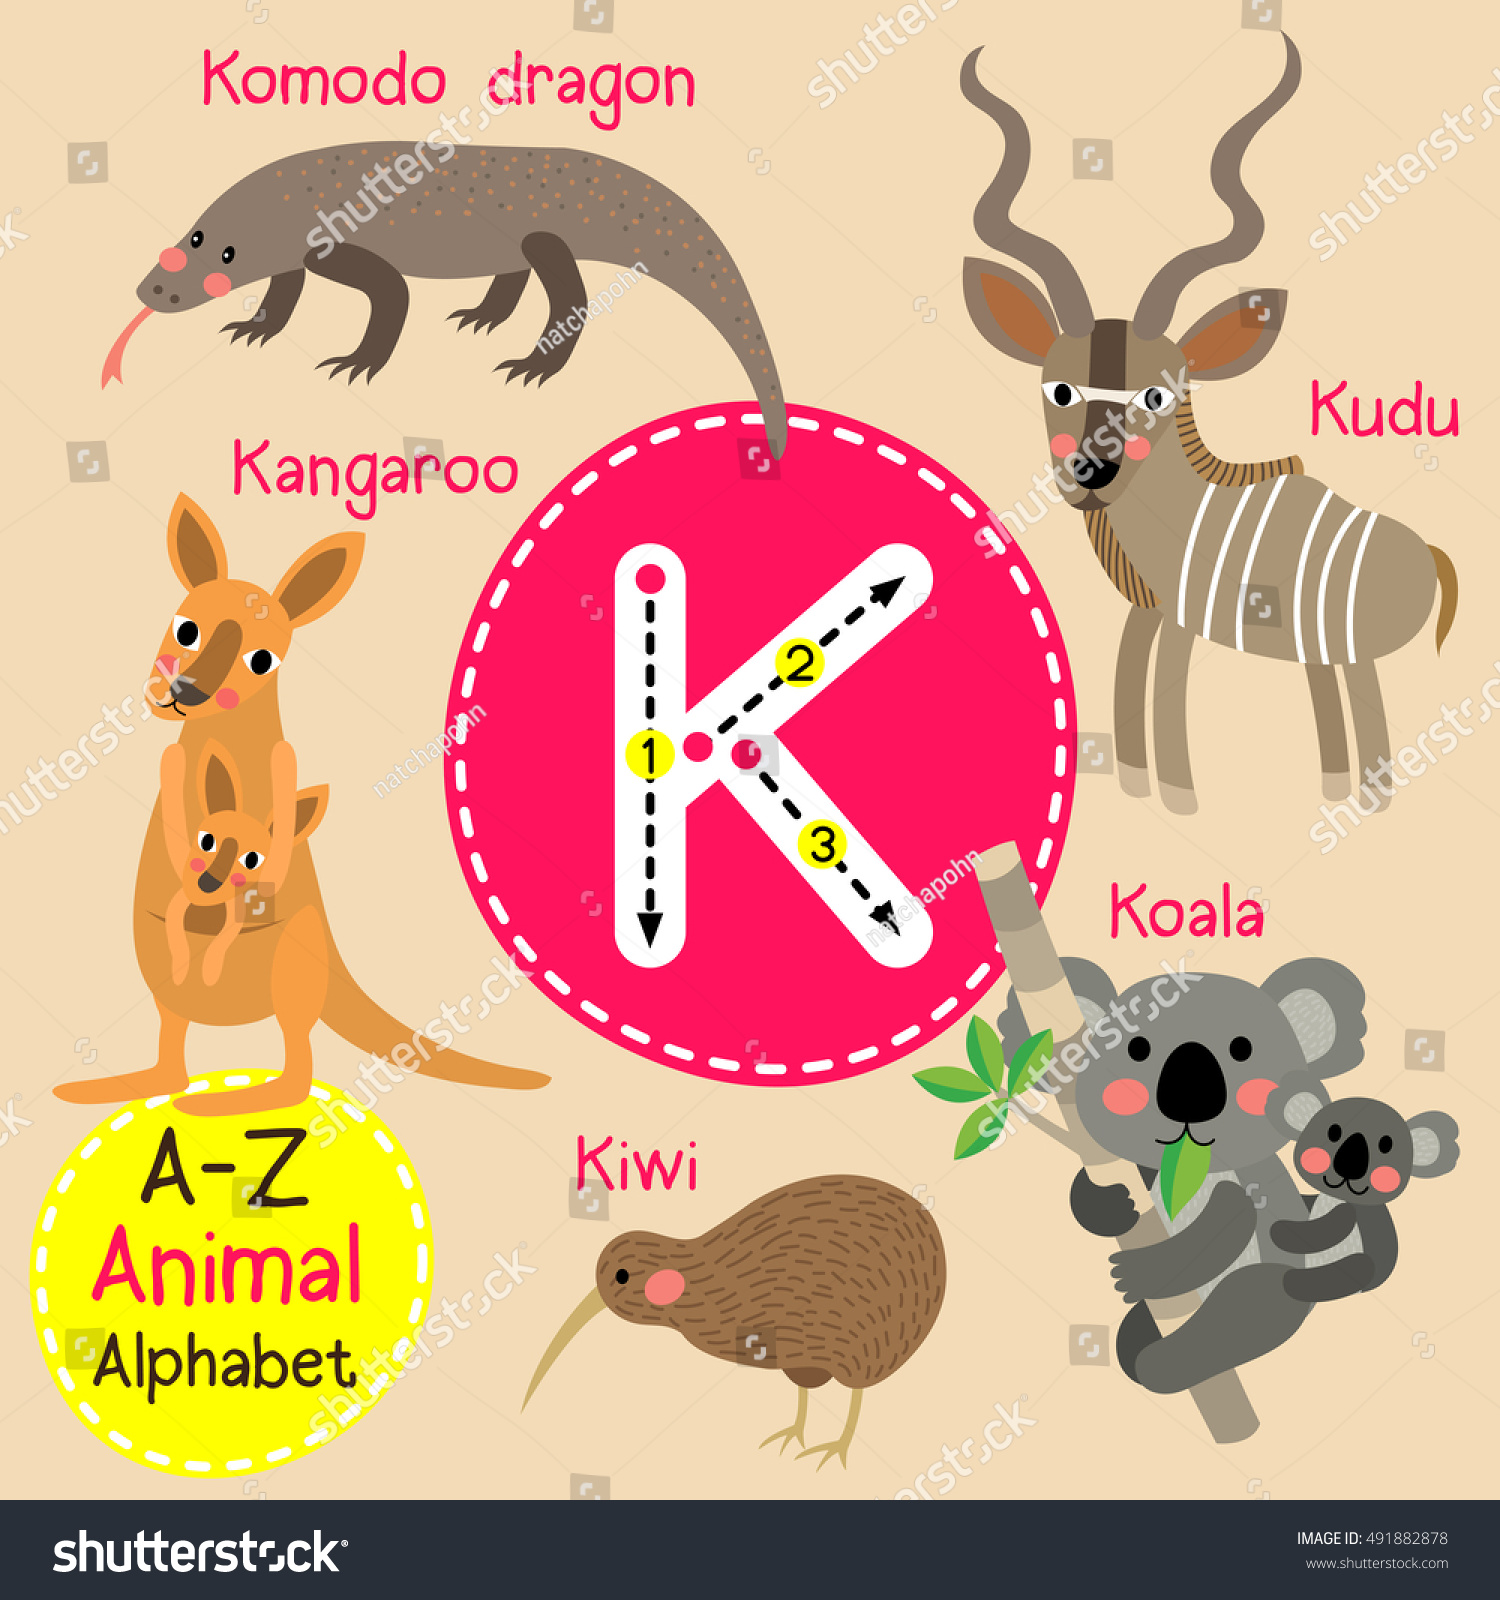 English alphabet for kids - Vkids - Apps on Google Play